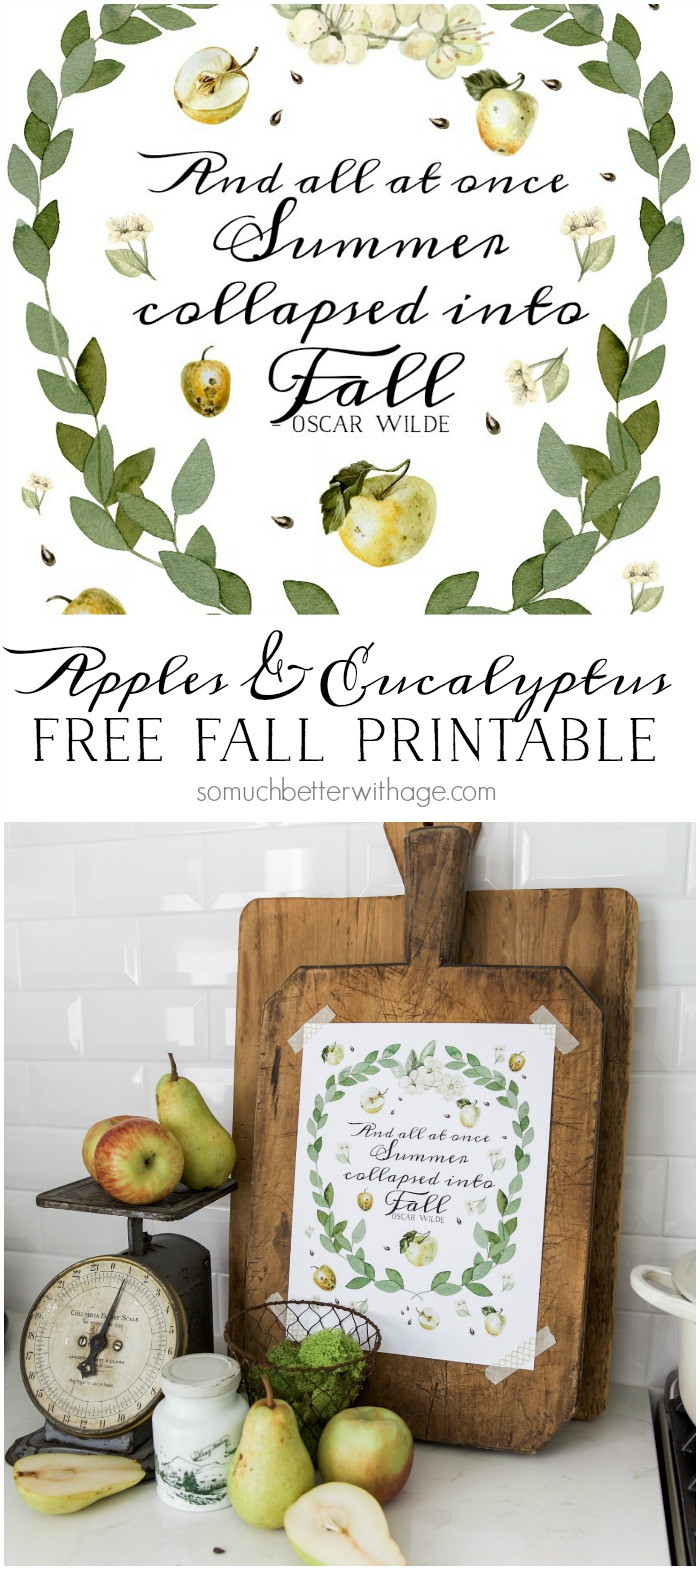 Apples, Pears & Eucalyptus Printable - So Much Better With Age